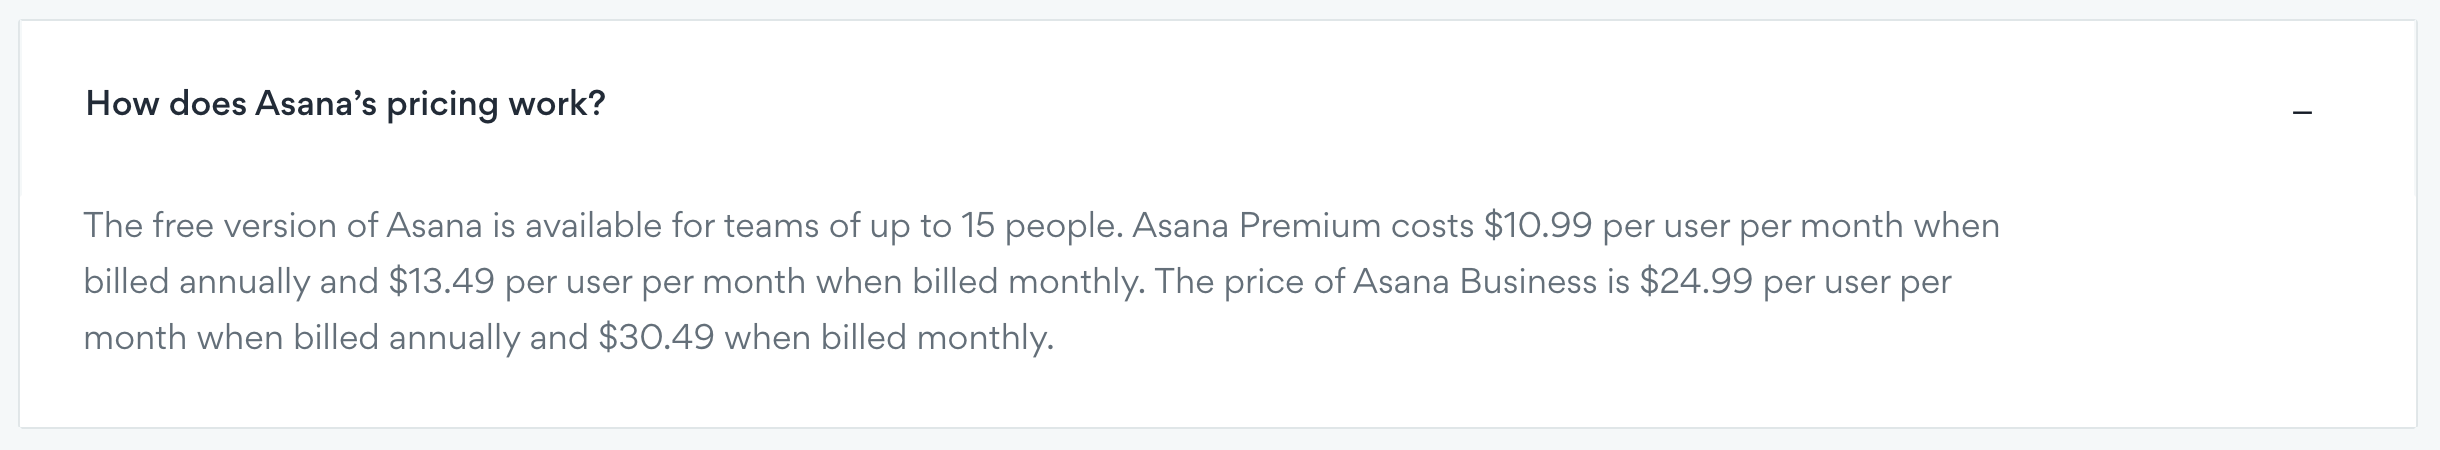 asana per user pricing